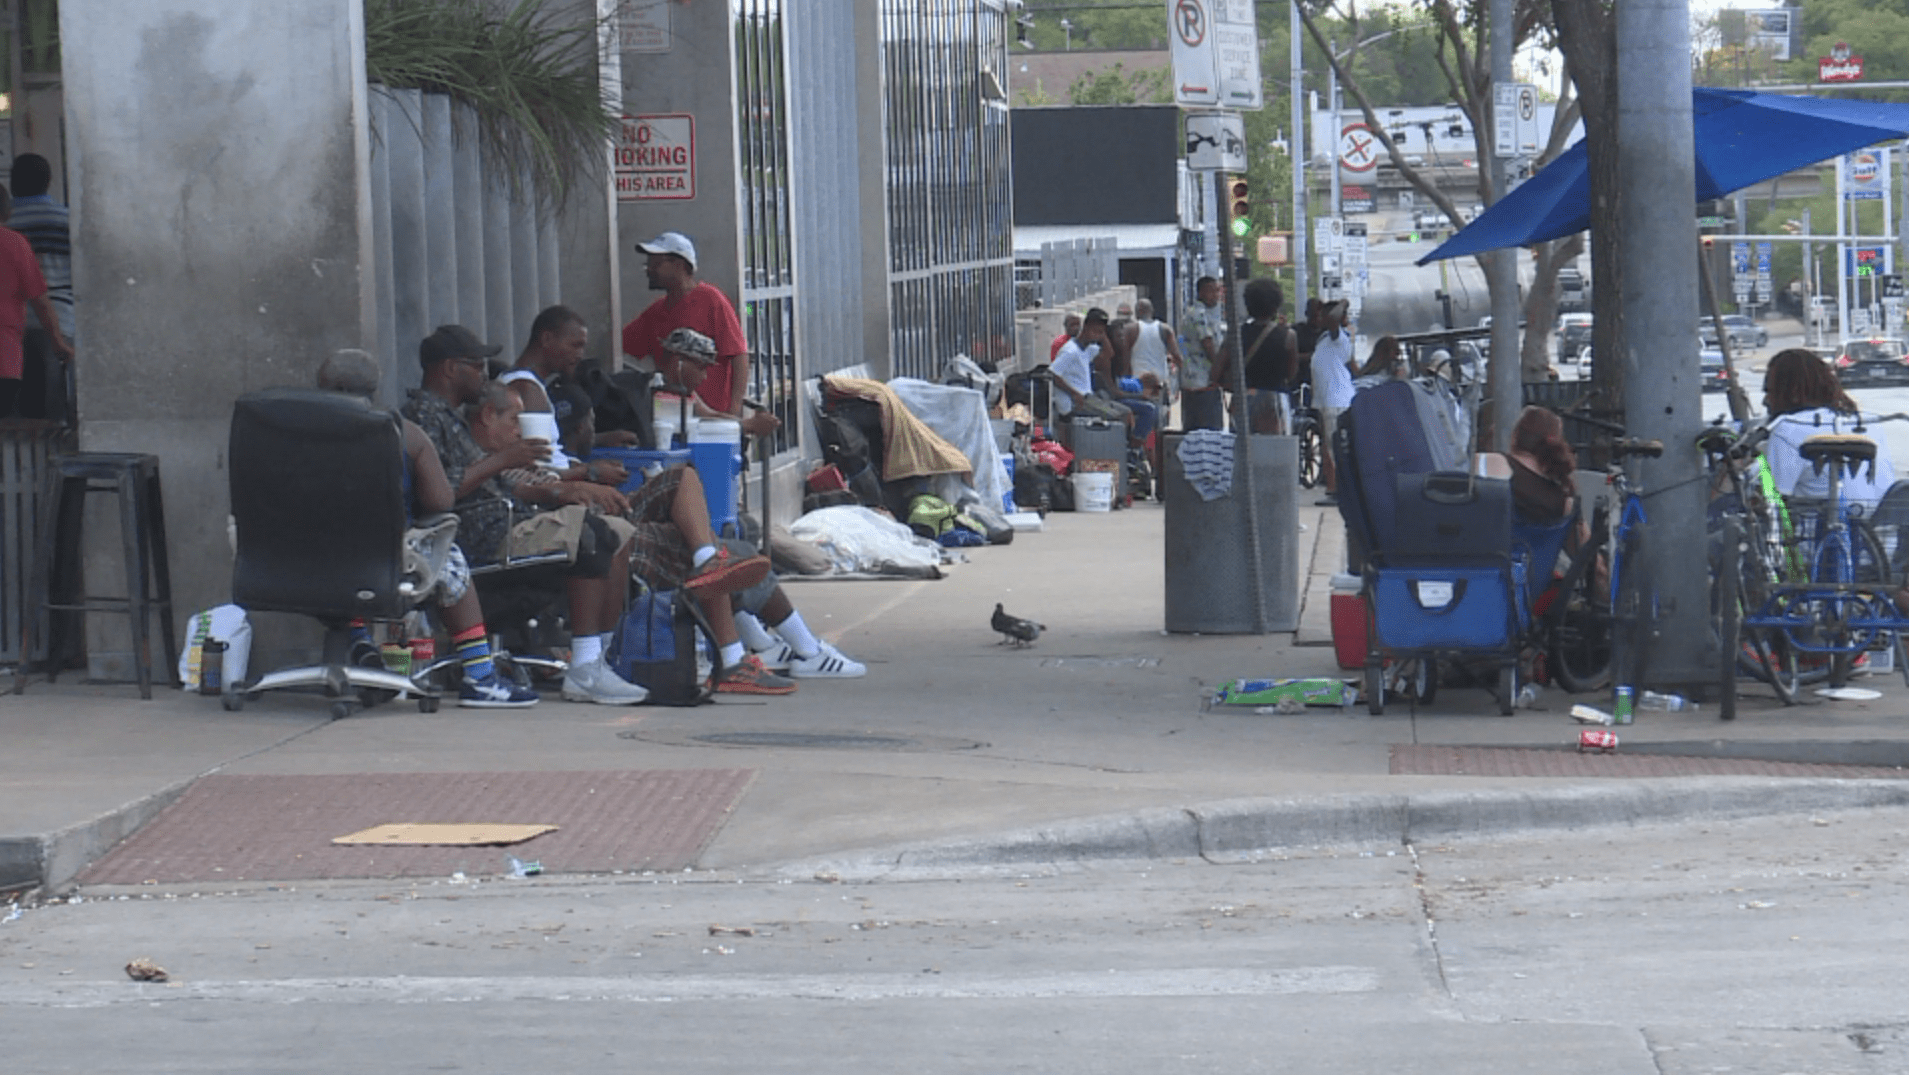 Crowds outside the Austin Resource Center for the Homeless_524415